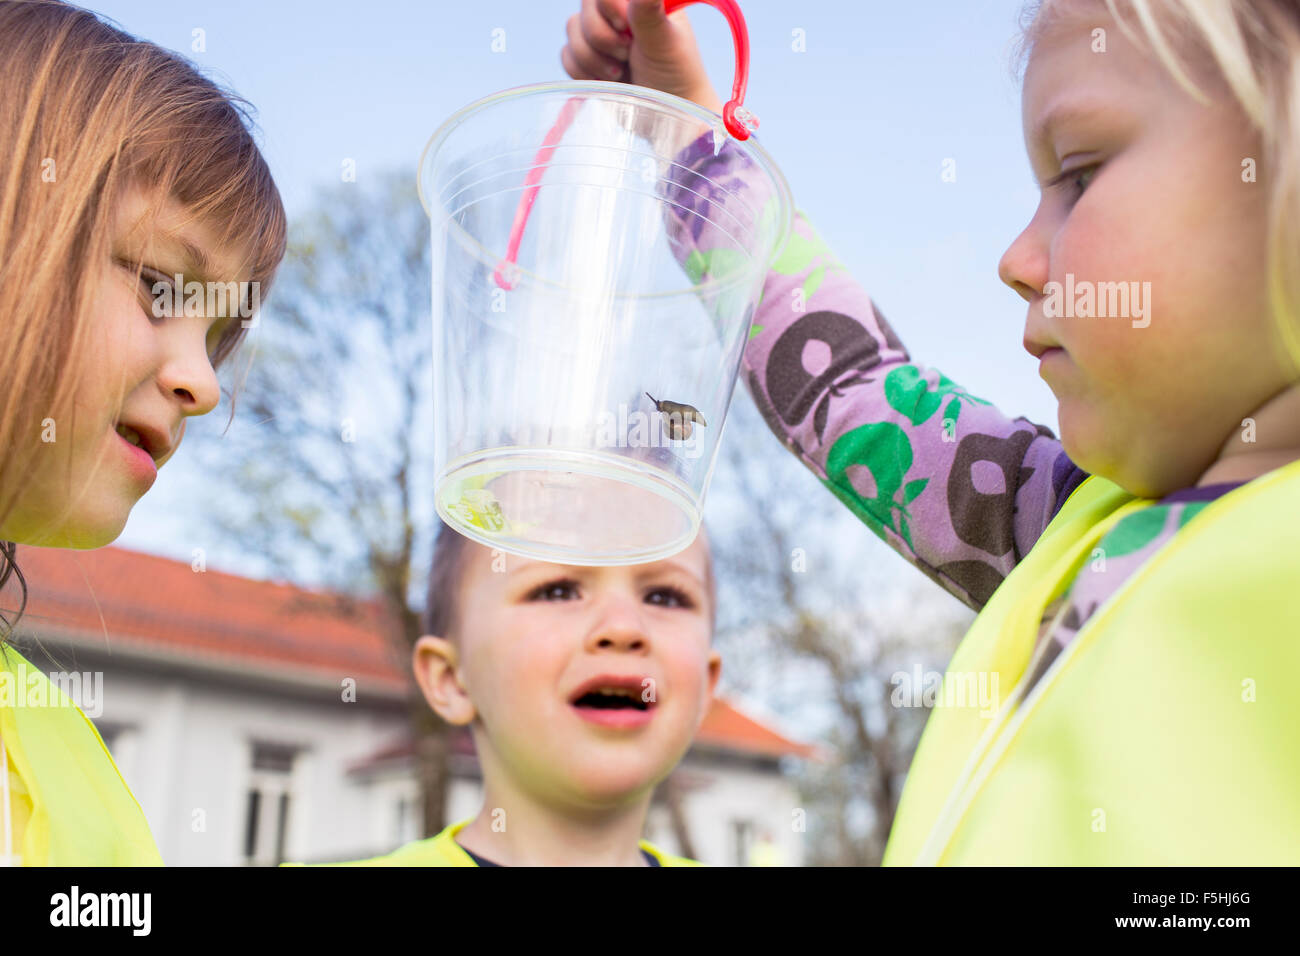 Sweden, Vastergotland, Olofstorp, Bergum, Kindergarten children (2-3, 4-5) learning outdoors - Stock Image